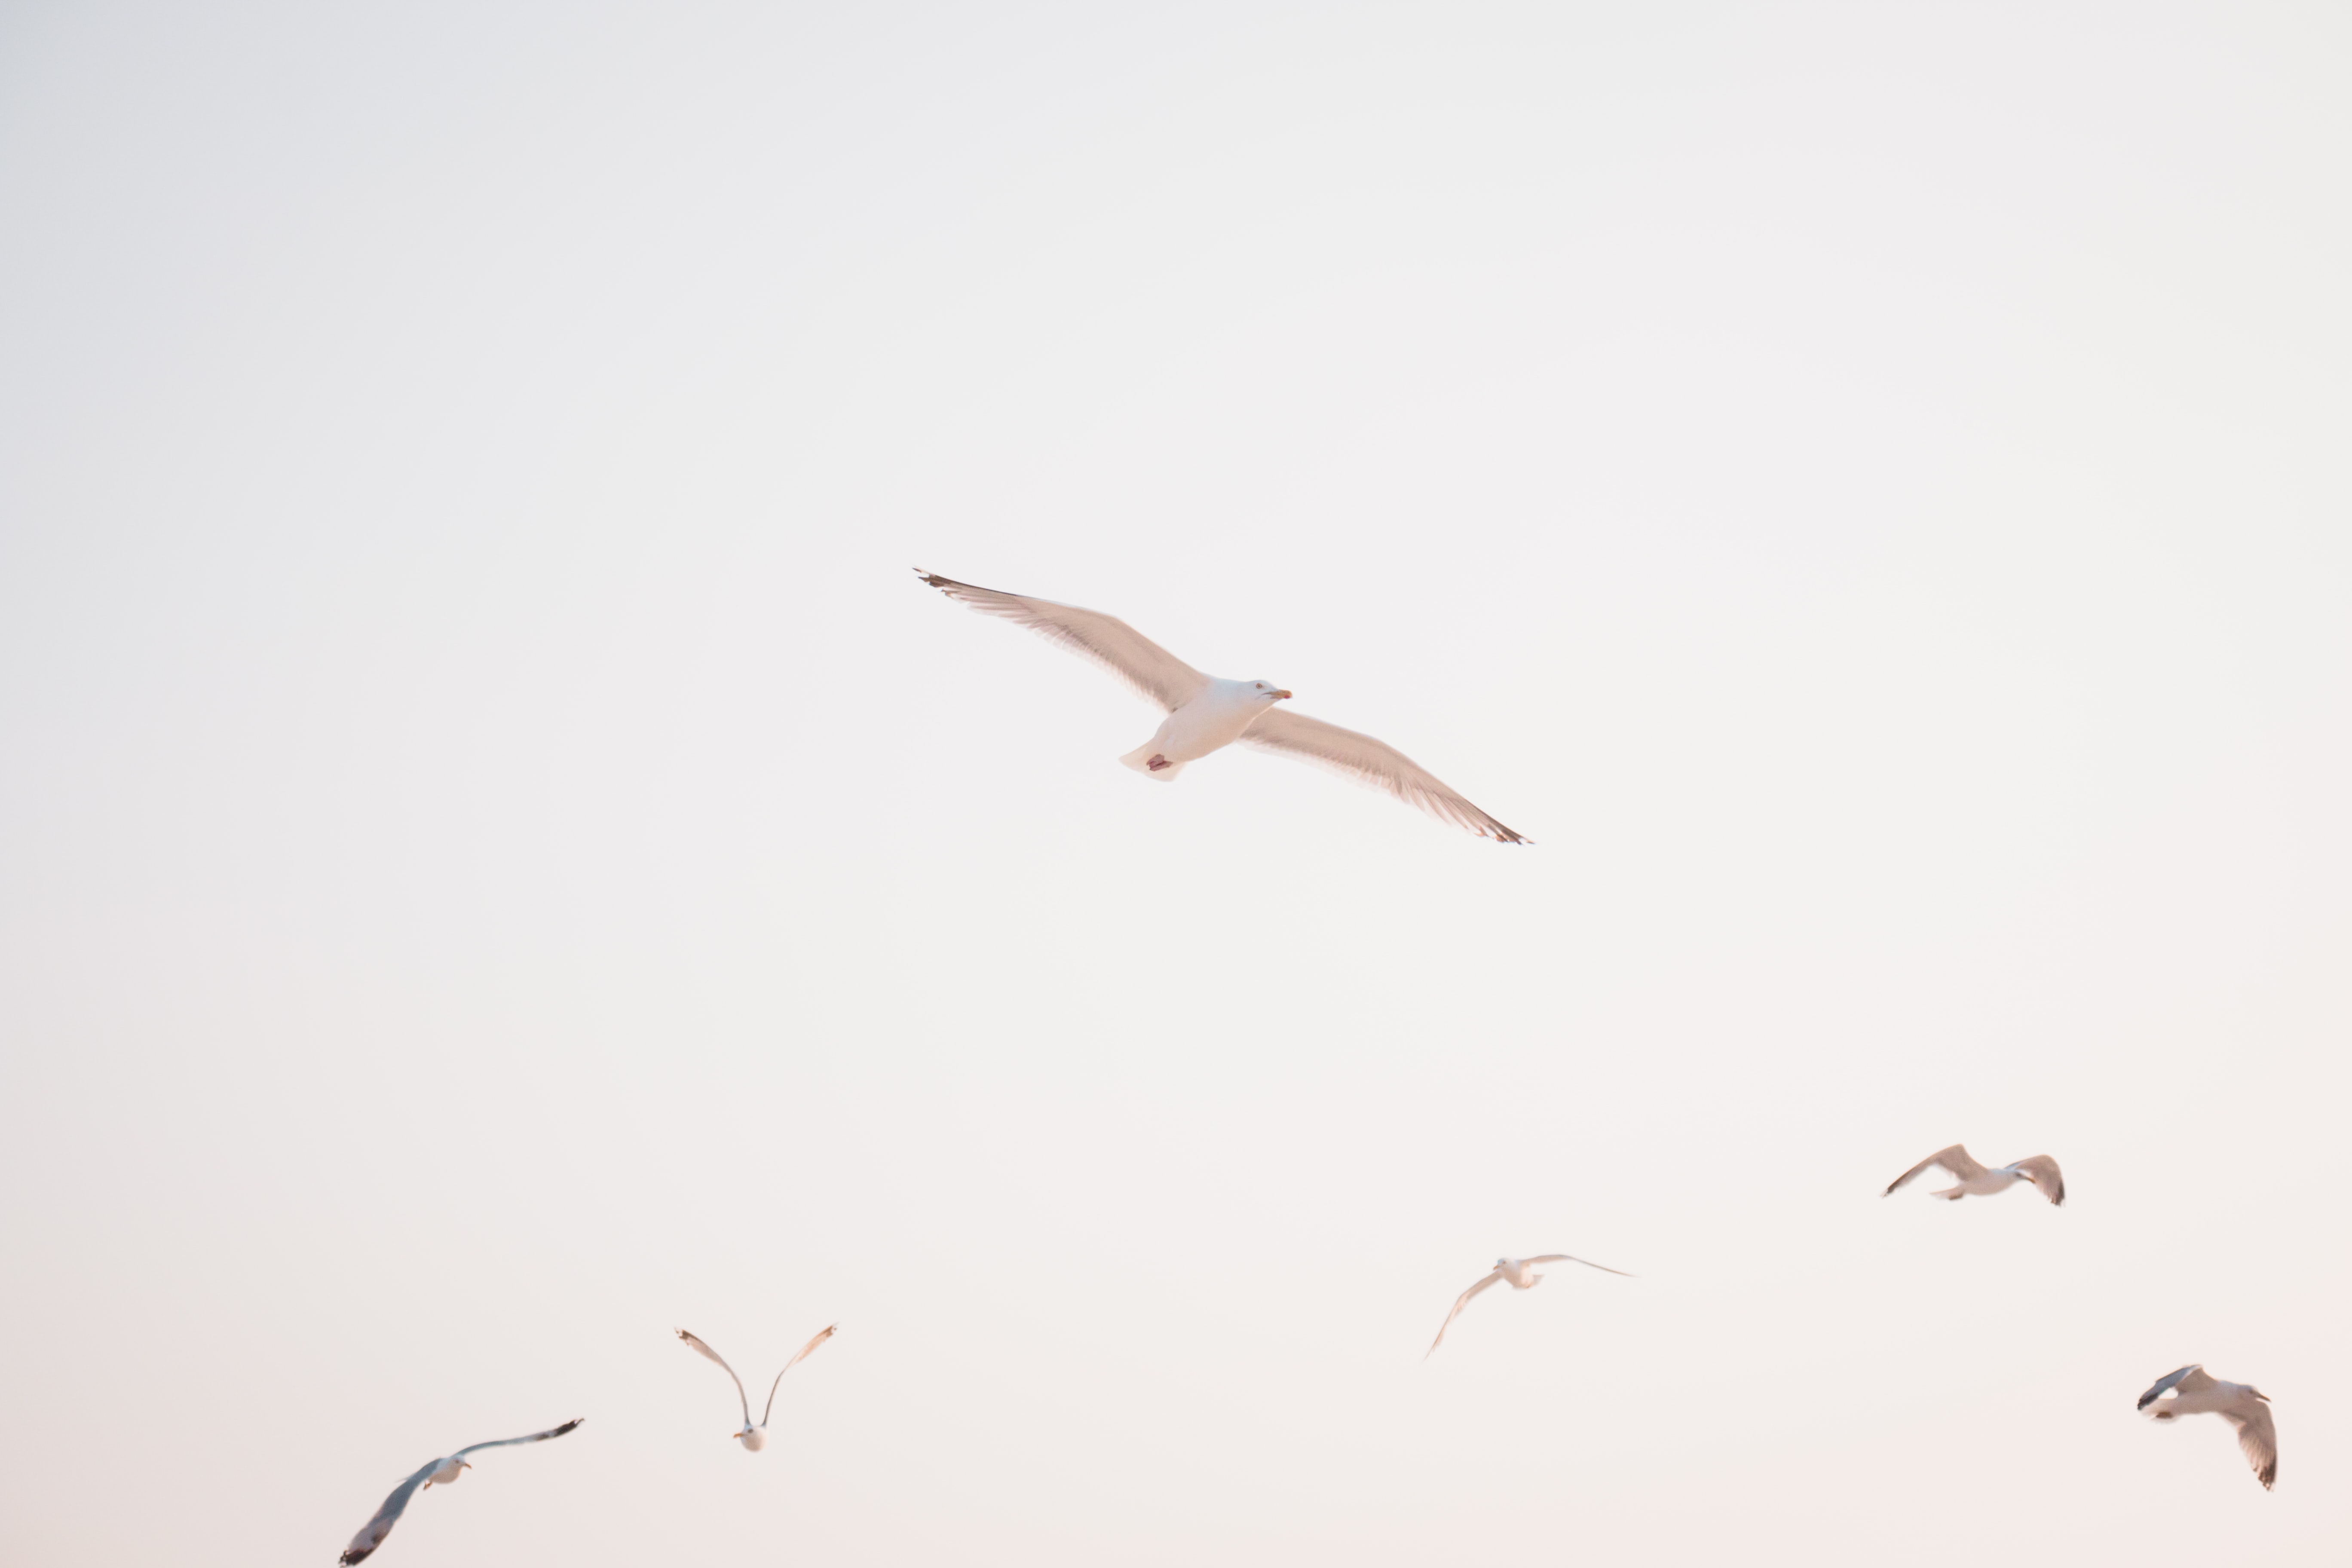 low angle photography of flying bird